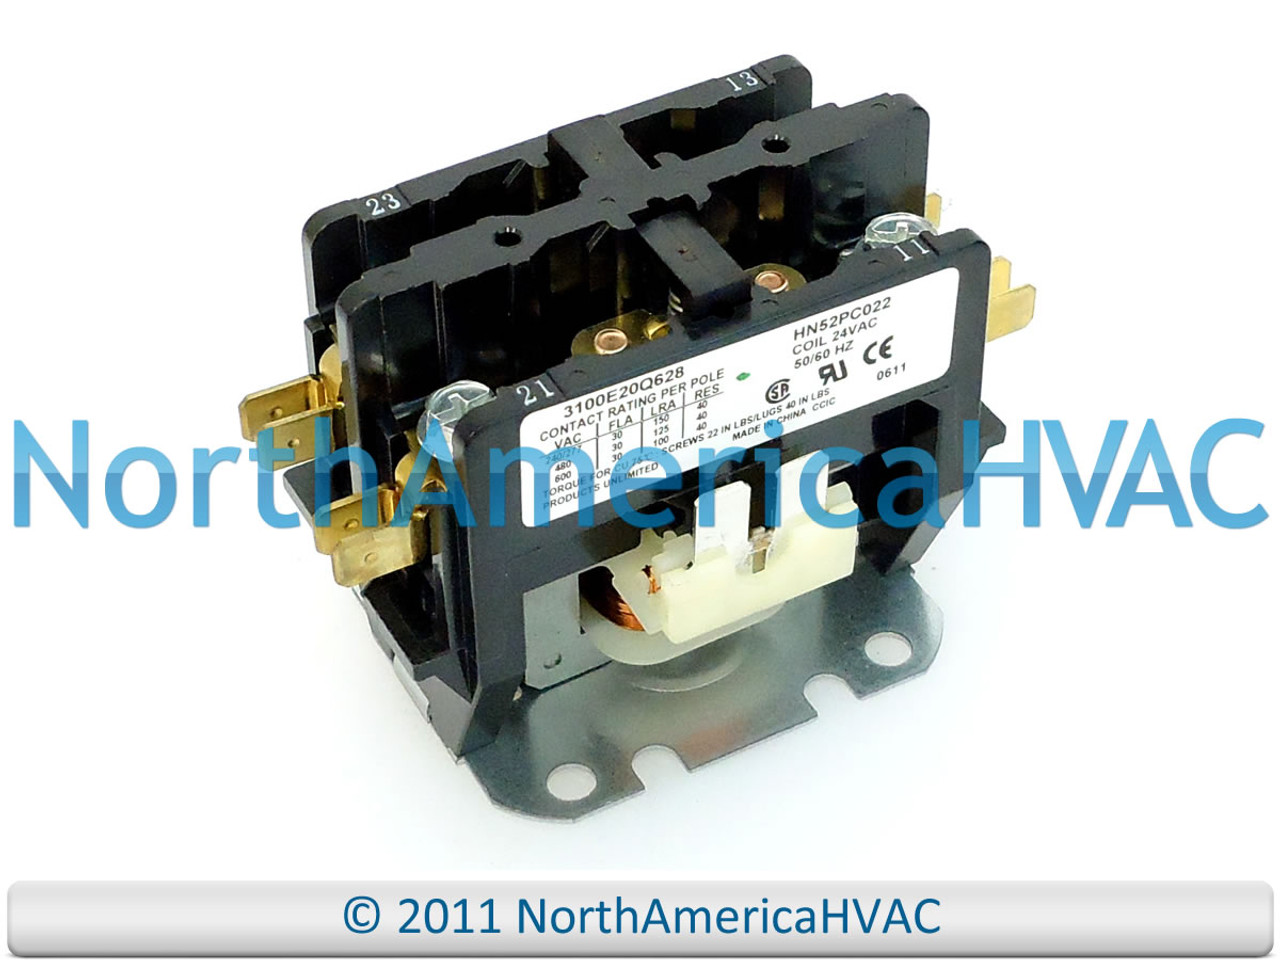 1 Pole 30 Amp Replacement Condenser Contactor HN51KC024 by Payne Payne Single Pole